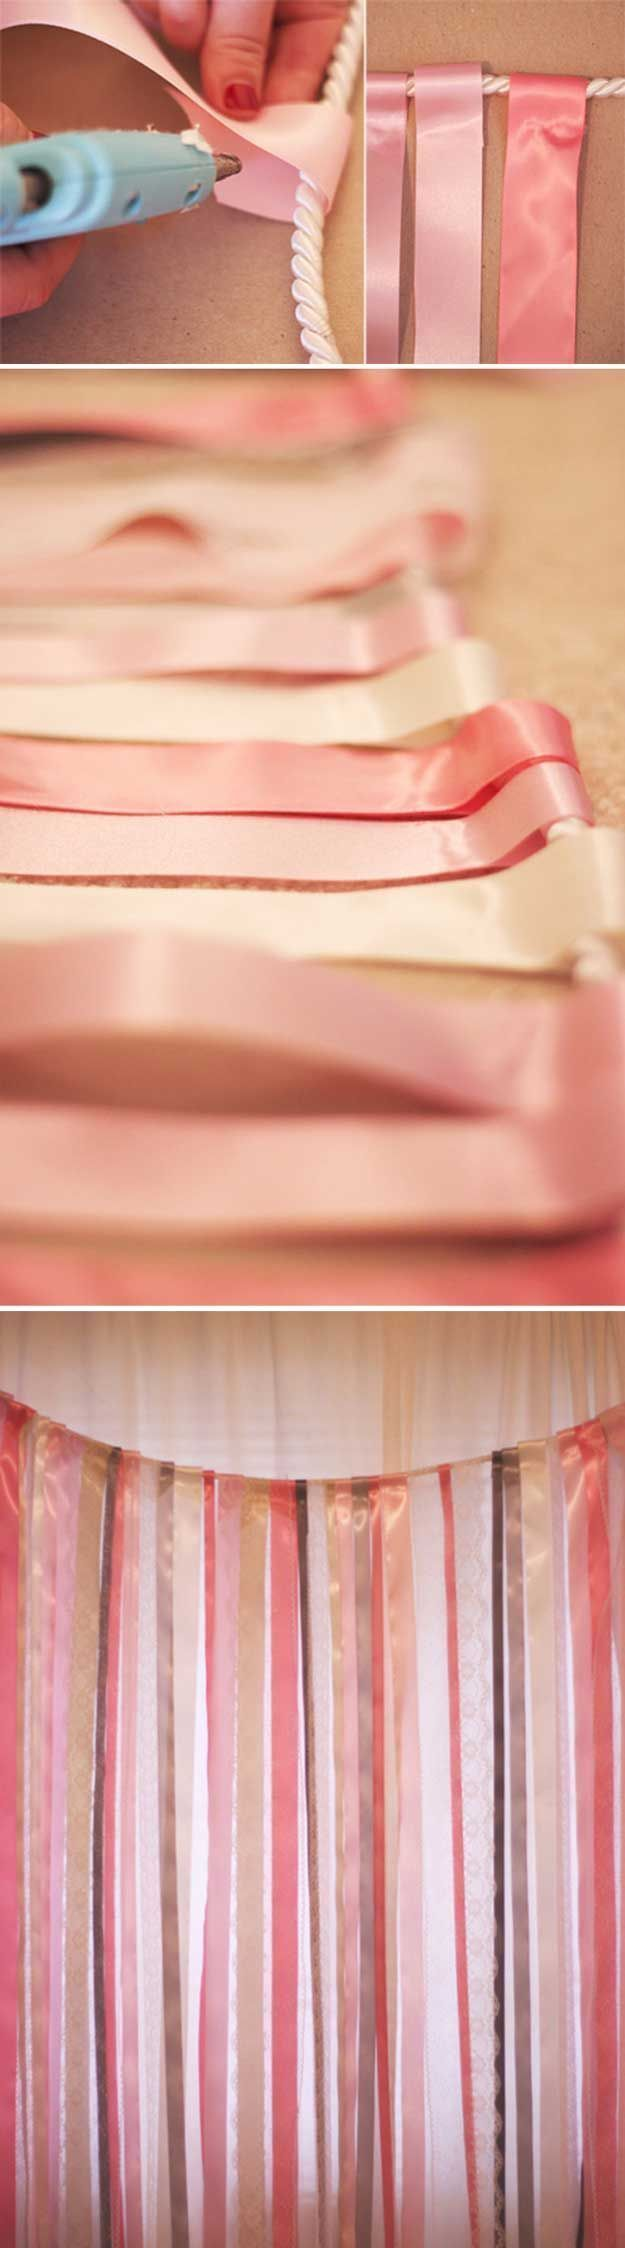 Simple DIY Photo Booth Backdrop Tutorial | Ribbon and Lace Backdrop by DIY Ready at diyready.com/...